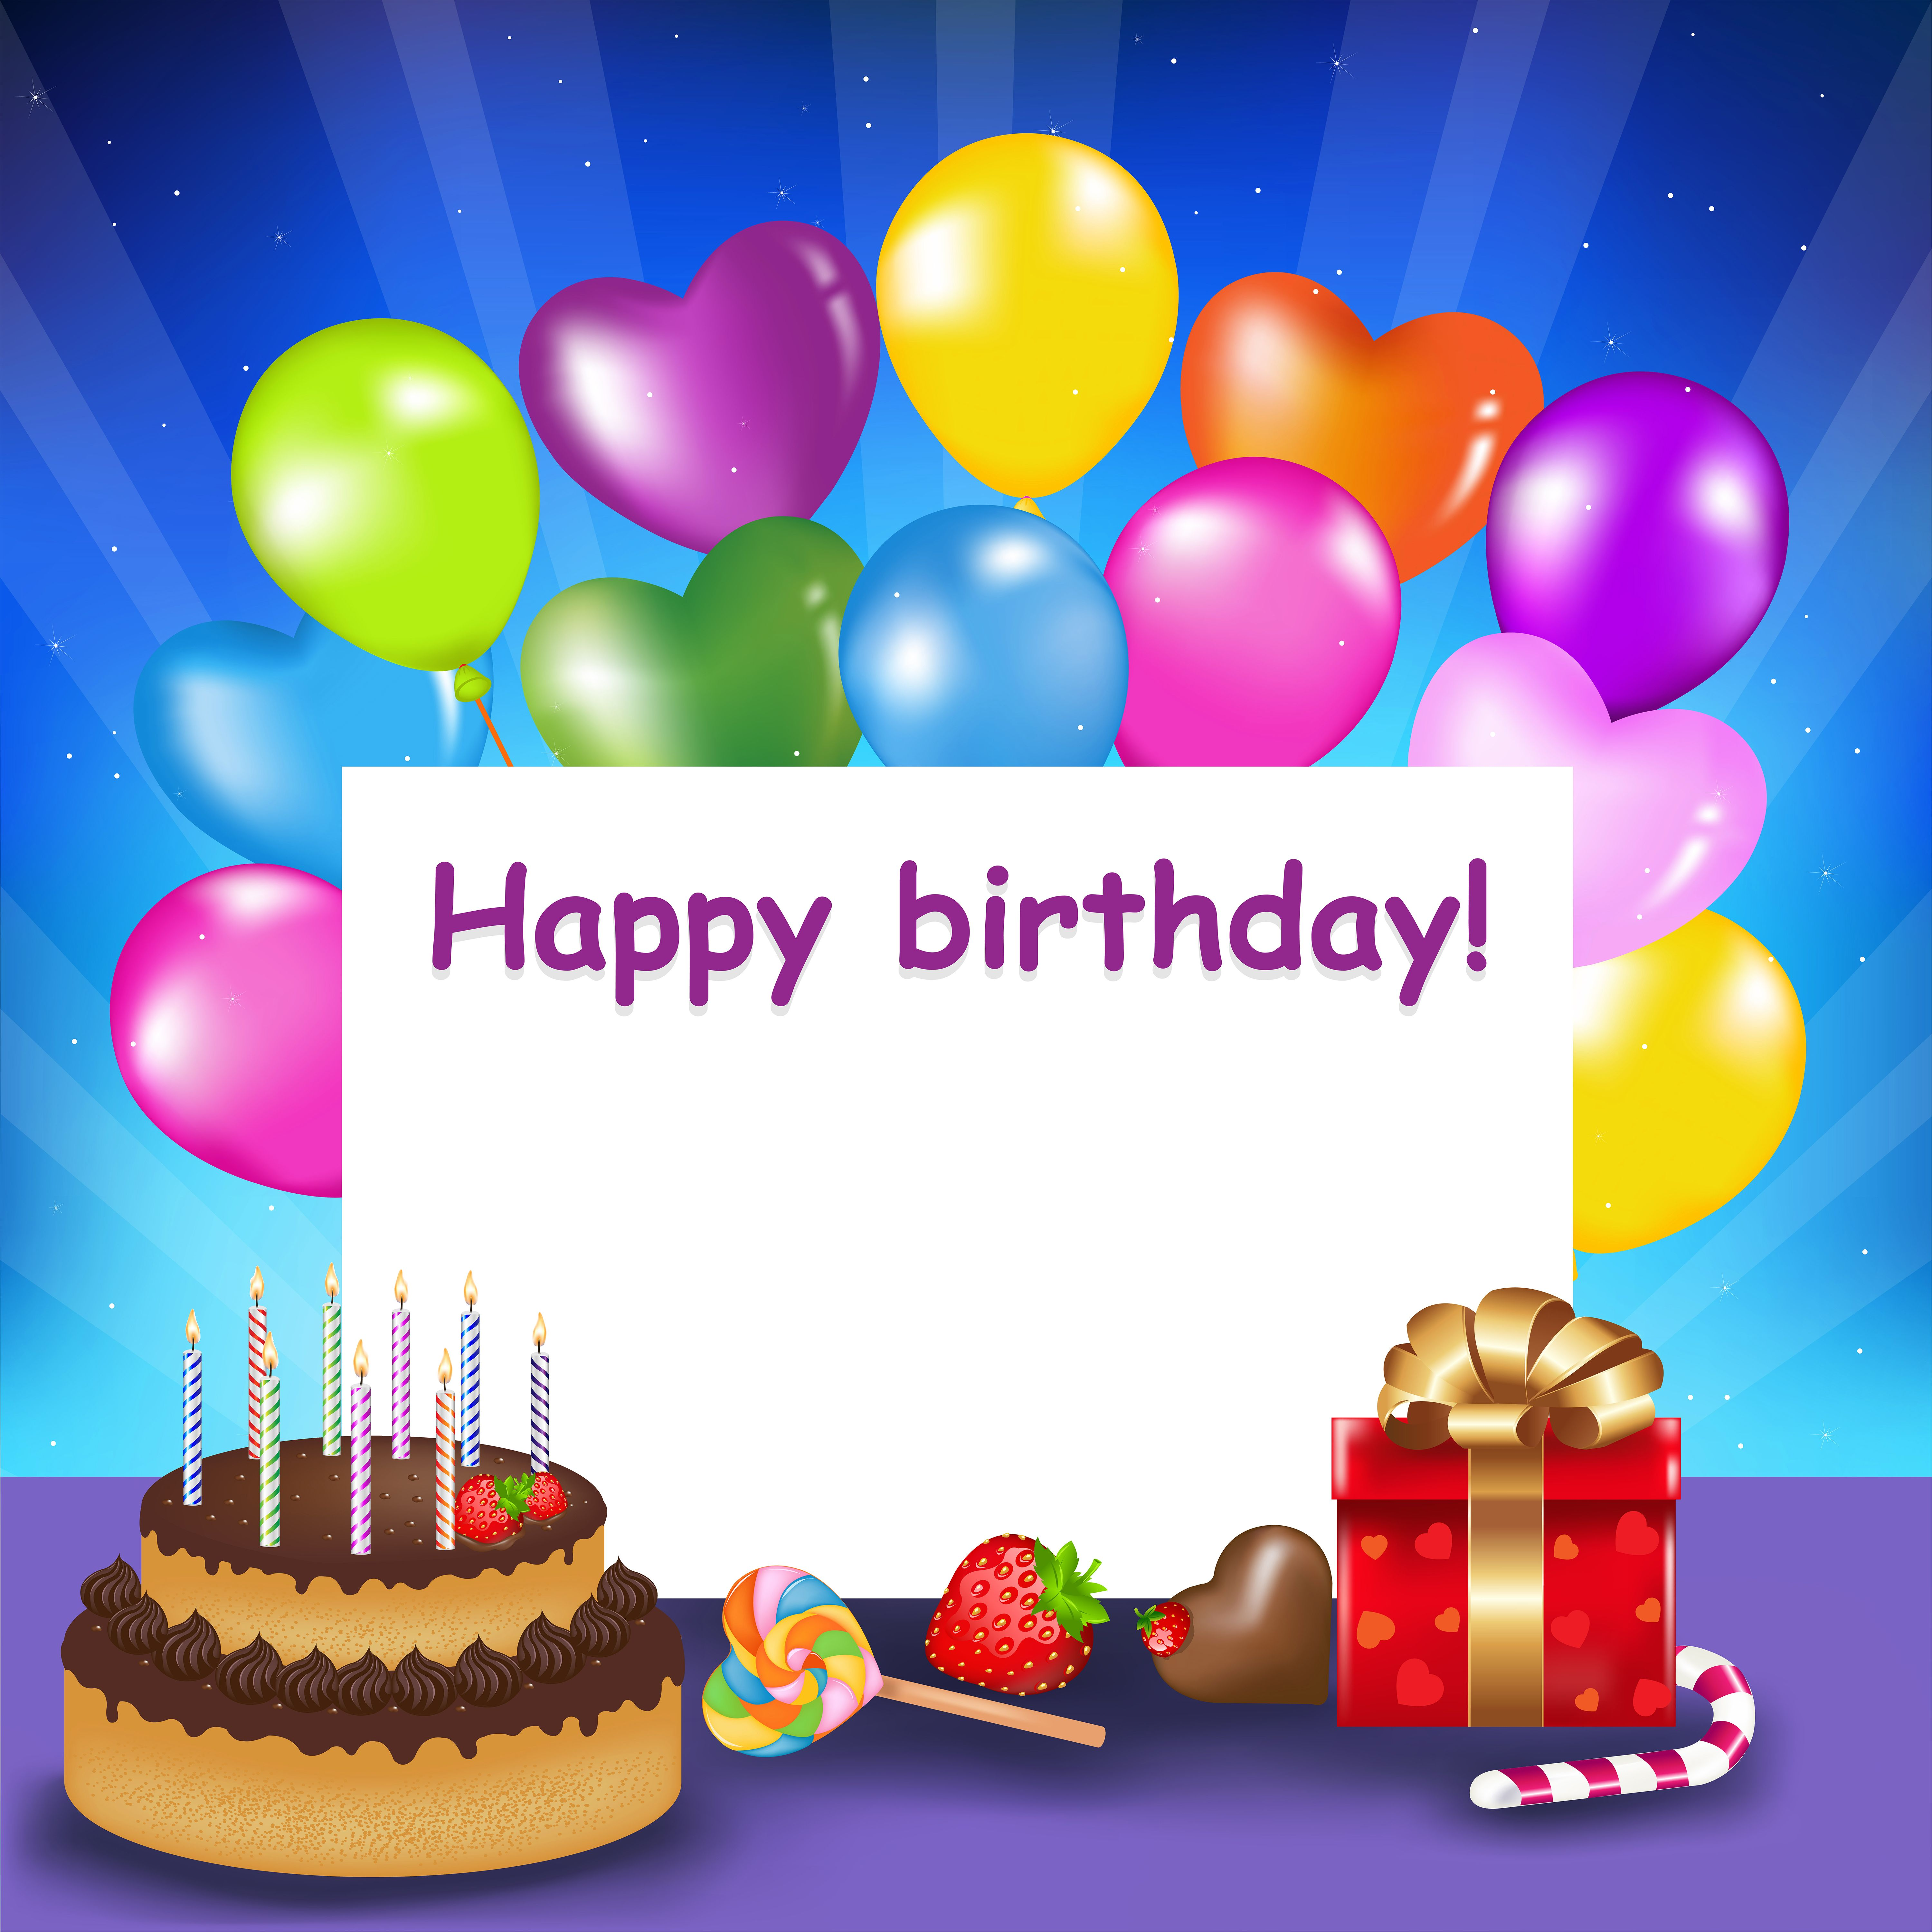 Happy Birthday Background With Cake And Balloons Happy Birthday Wallpaper Birthday Balloons Birthday Images